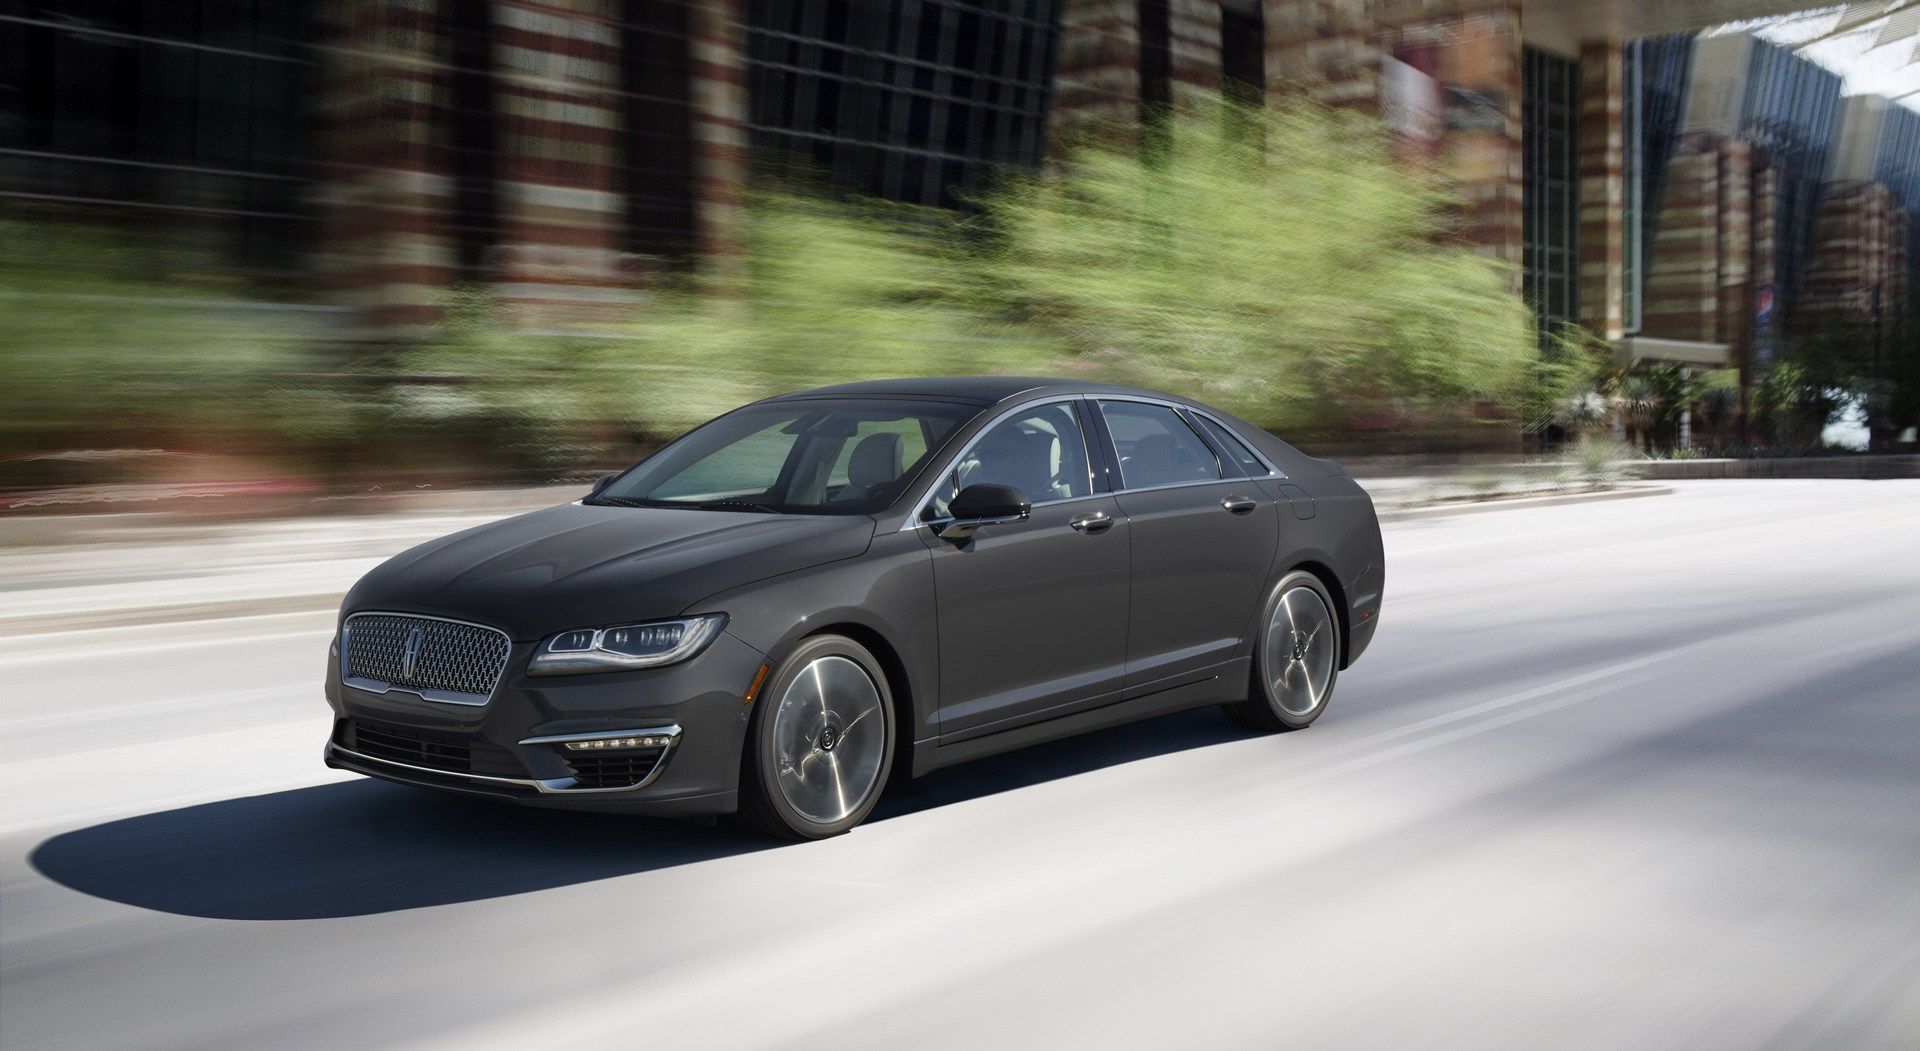 Spy Shots Lincoln Mkz Sedan Photos